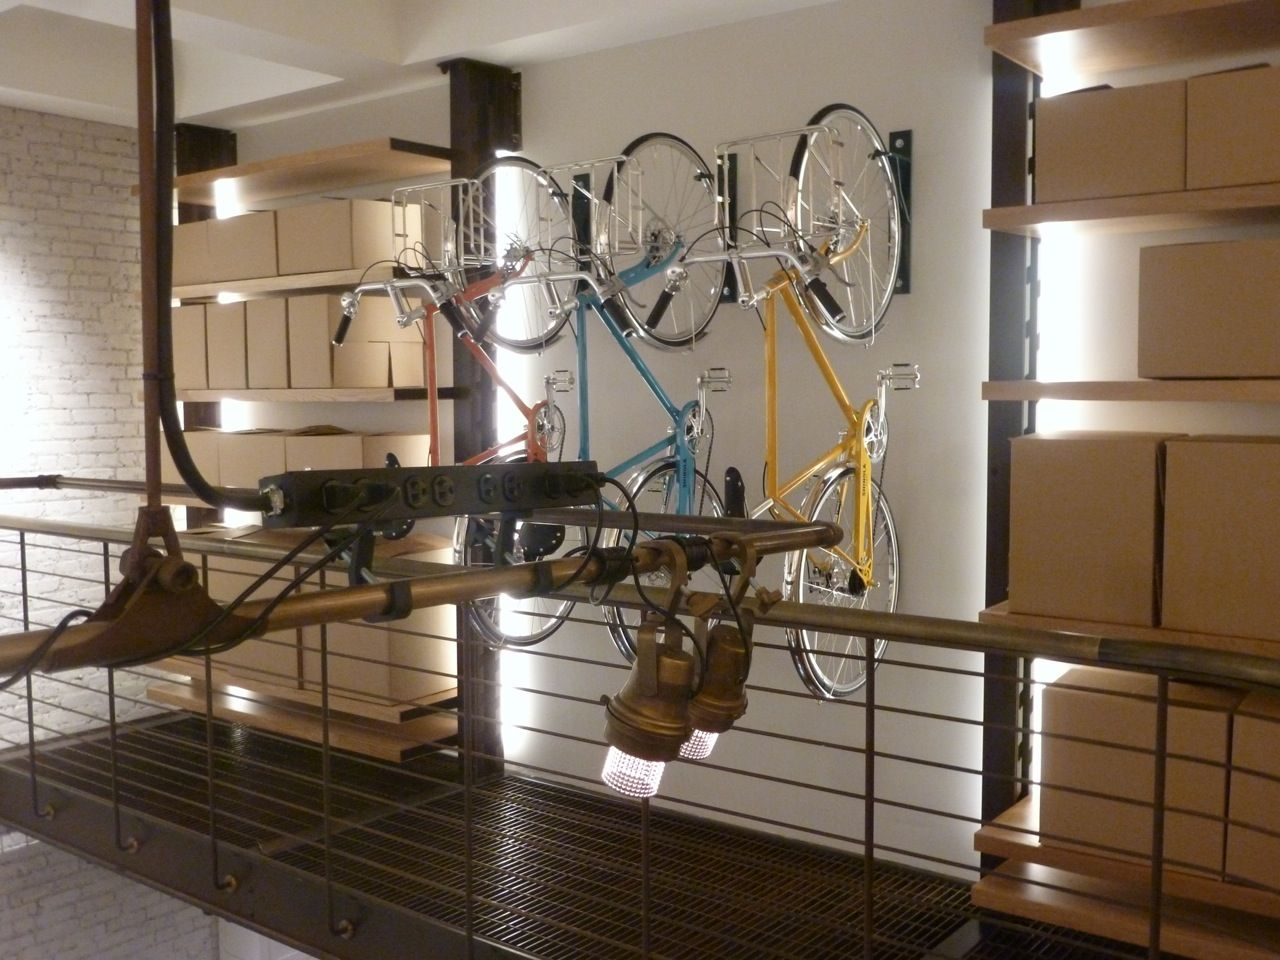 Wall-mounts for bicycles Shinola flagship store in NYC. & Wall-mounts for bicycles Shinola flagship store in NYC. | I Love ...